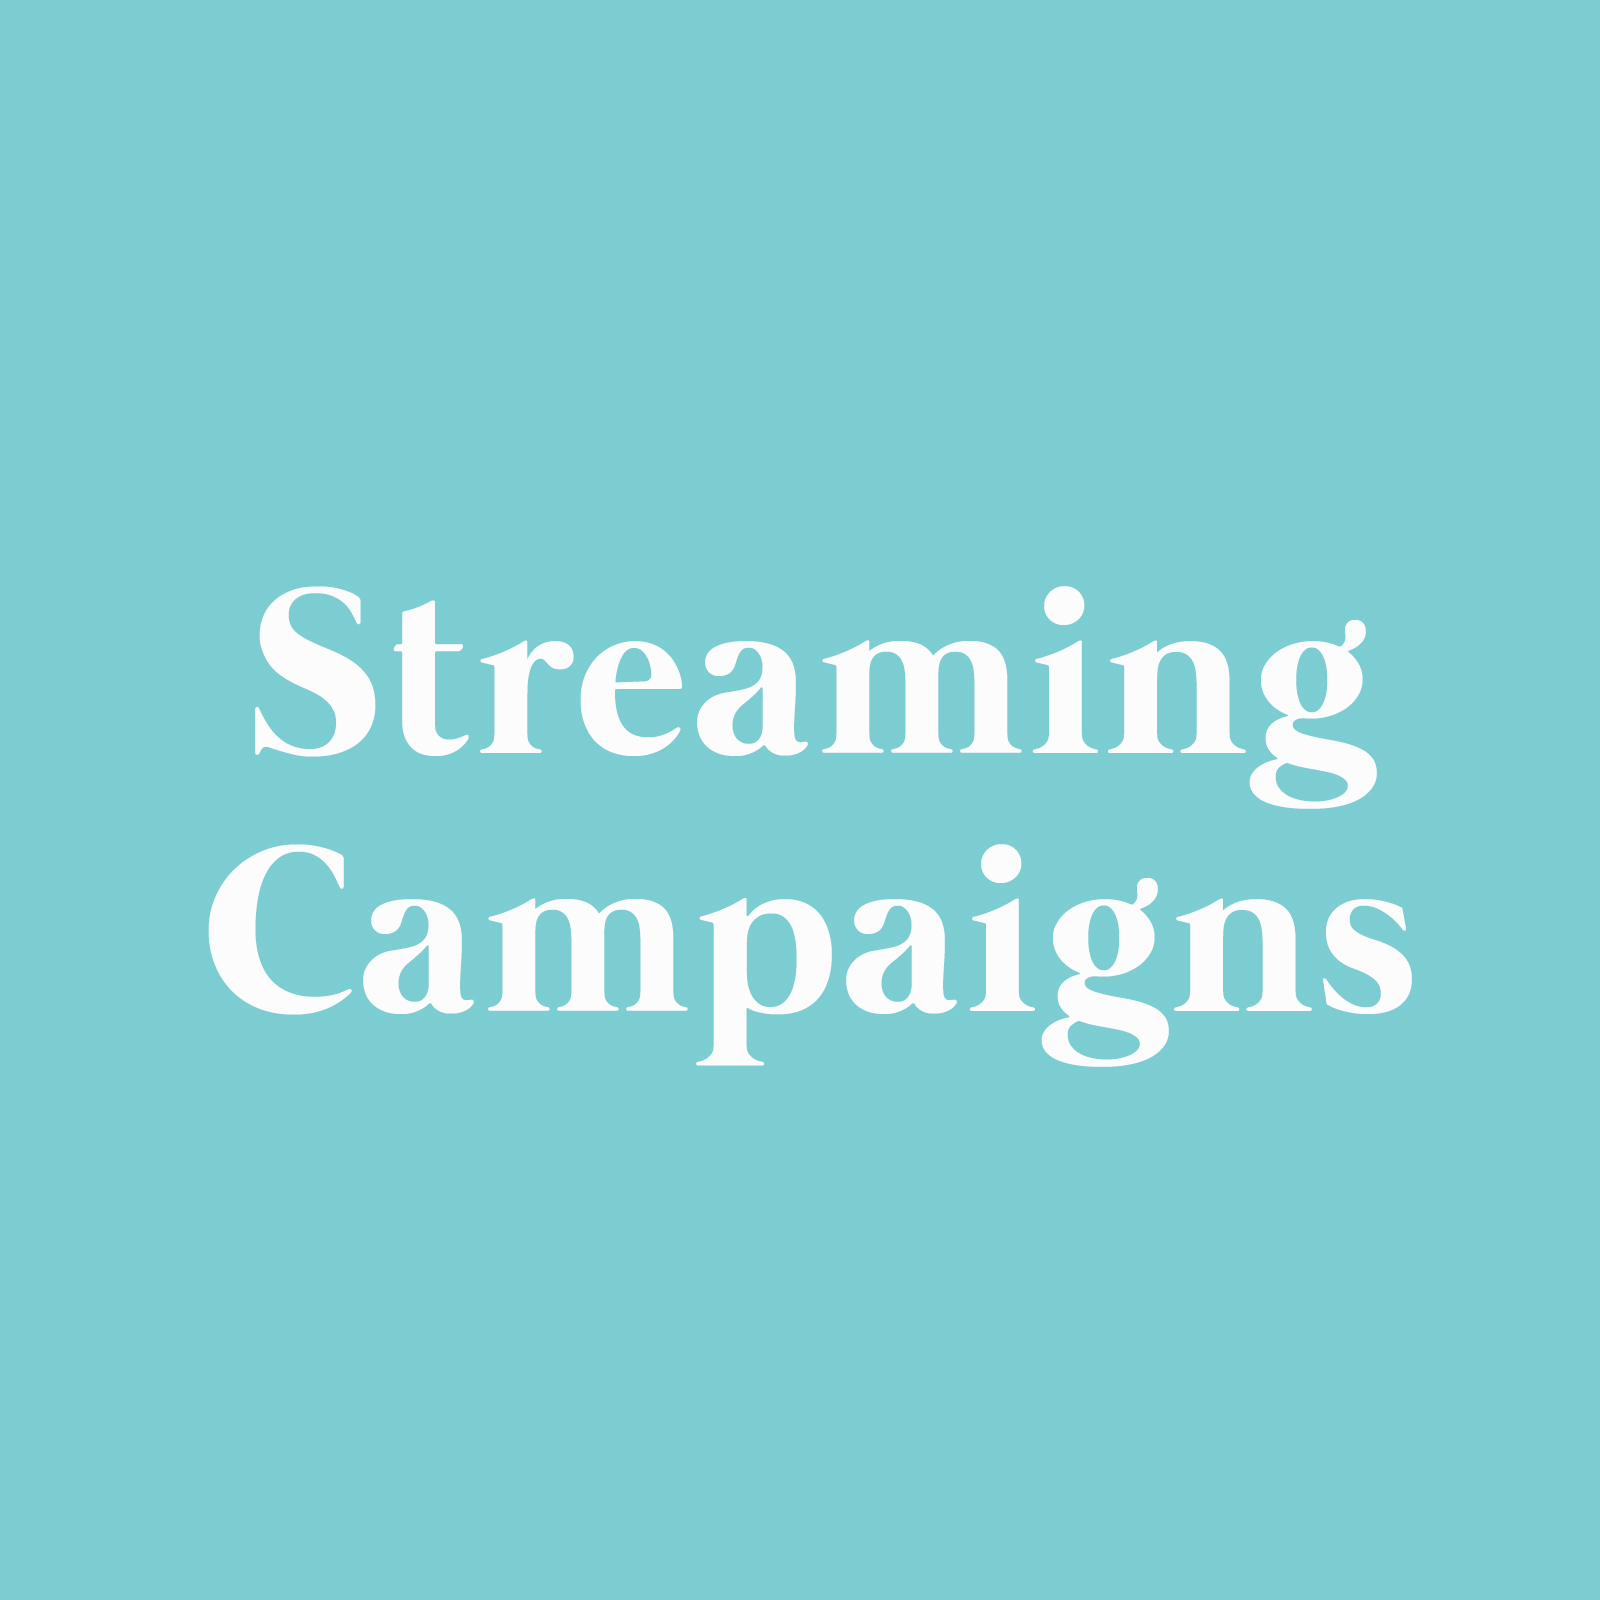 Streaming Campaigns